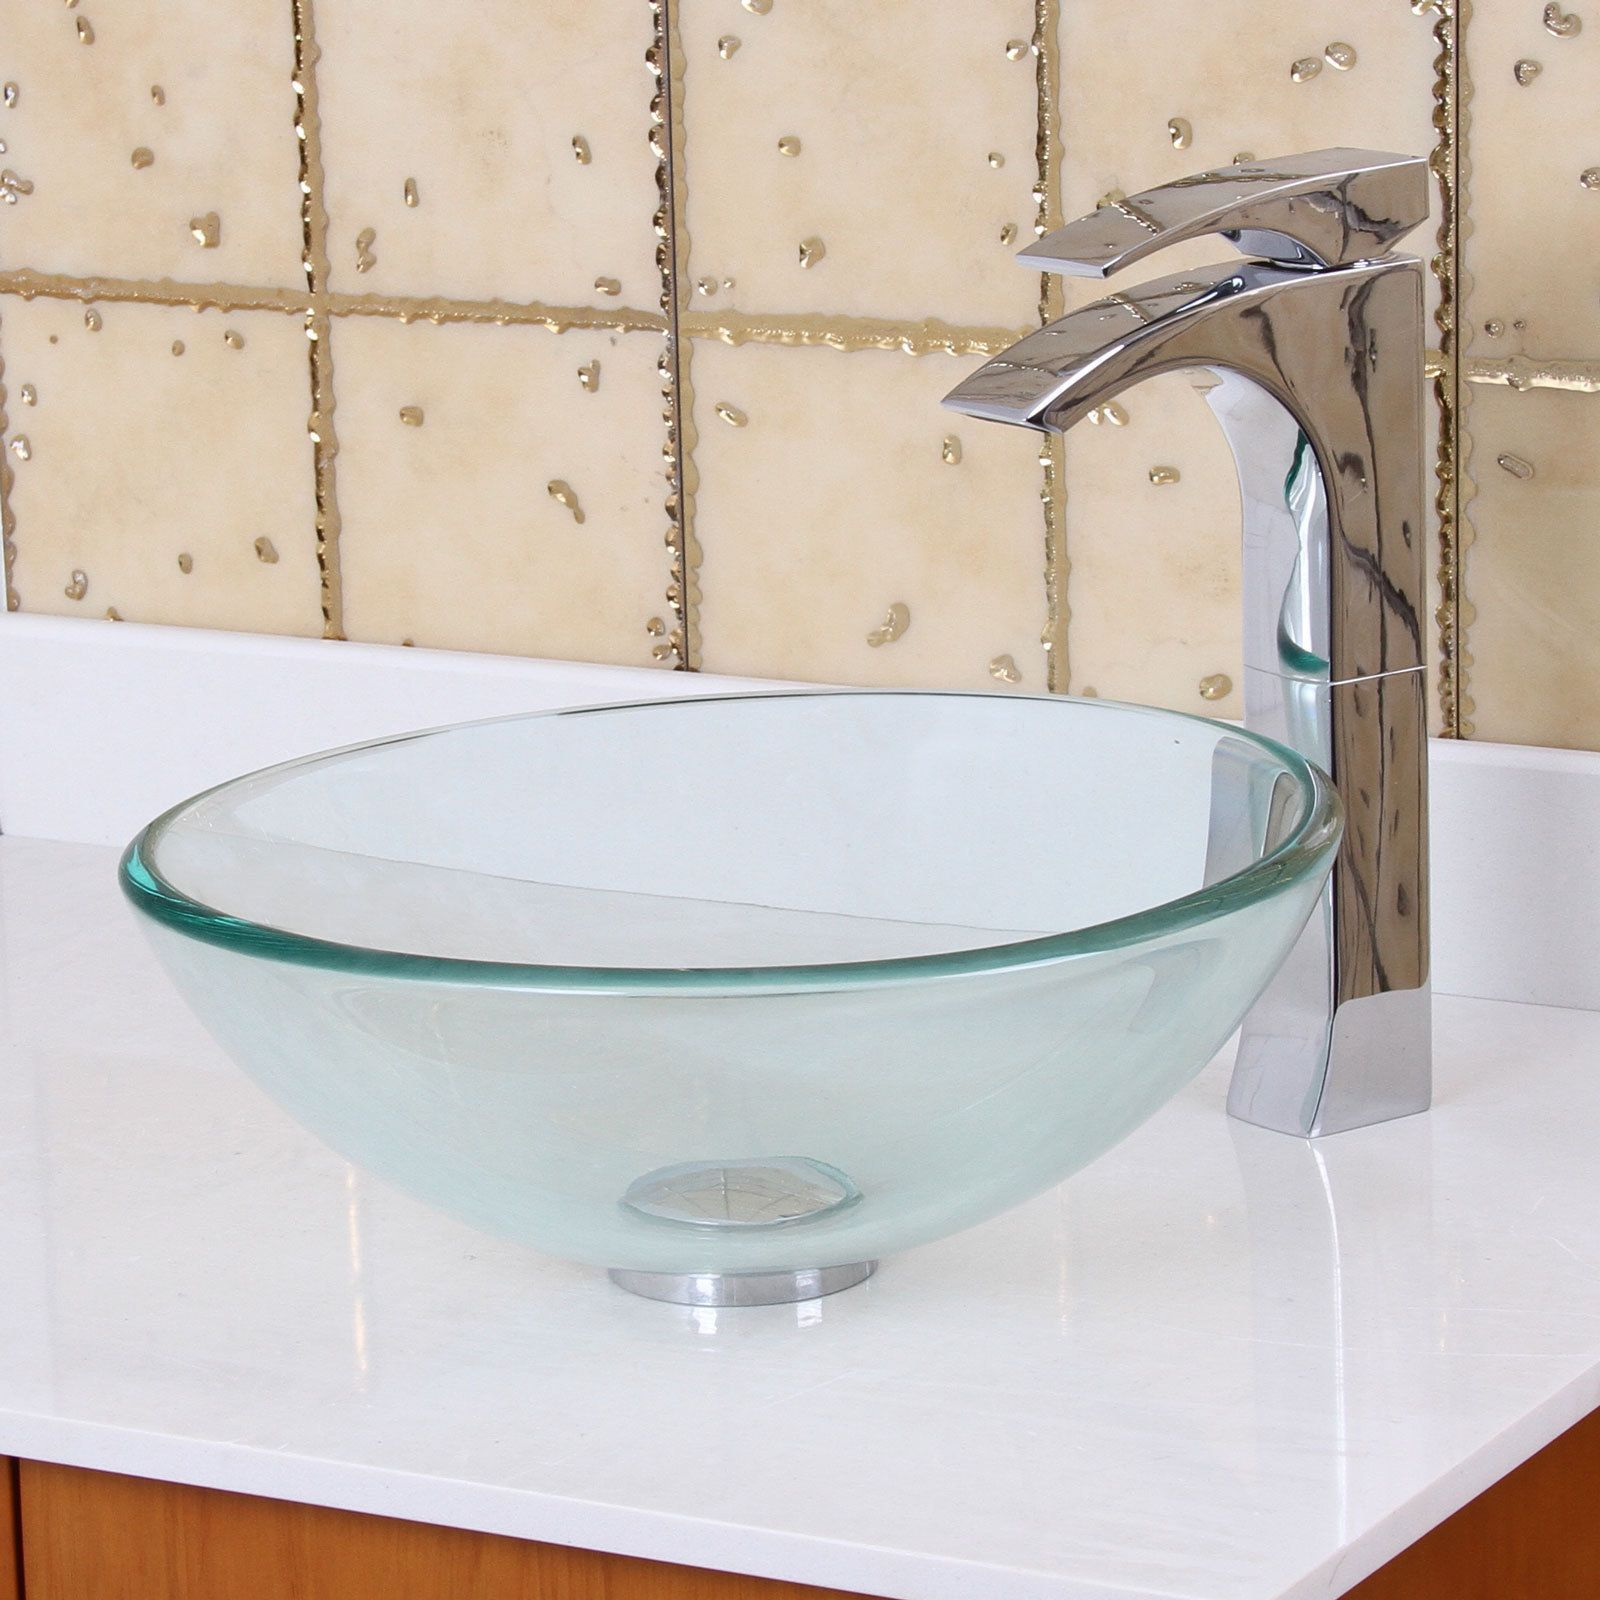 Elite Gd05S Small Clear Tempered Glass Bathroom Vessel Sink Amusing Small Bathroom Vessel Sink Inspiration